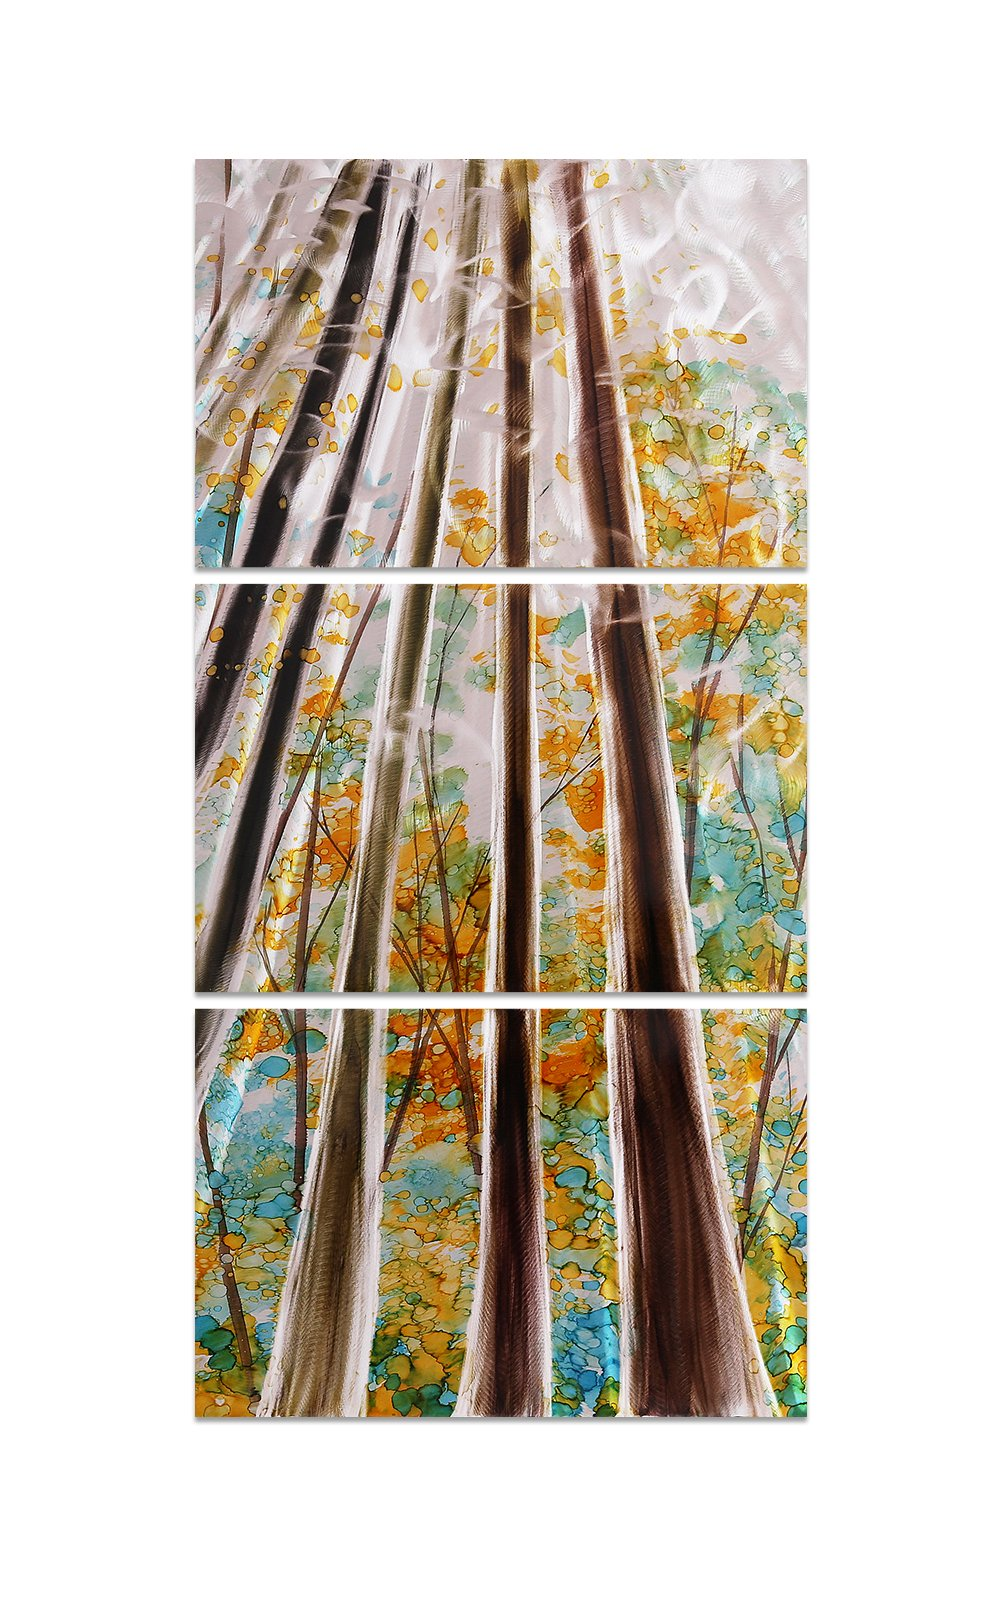 Luvurwall 3 Panel Woods Metal Wall Art, Metal Wall Art - Luvurwall